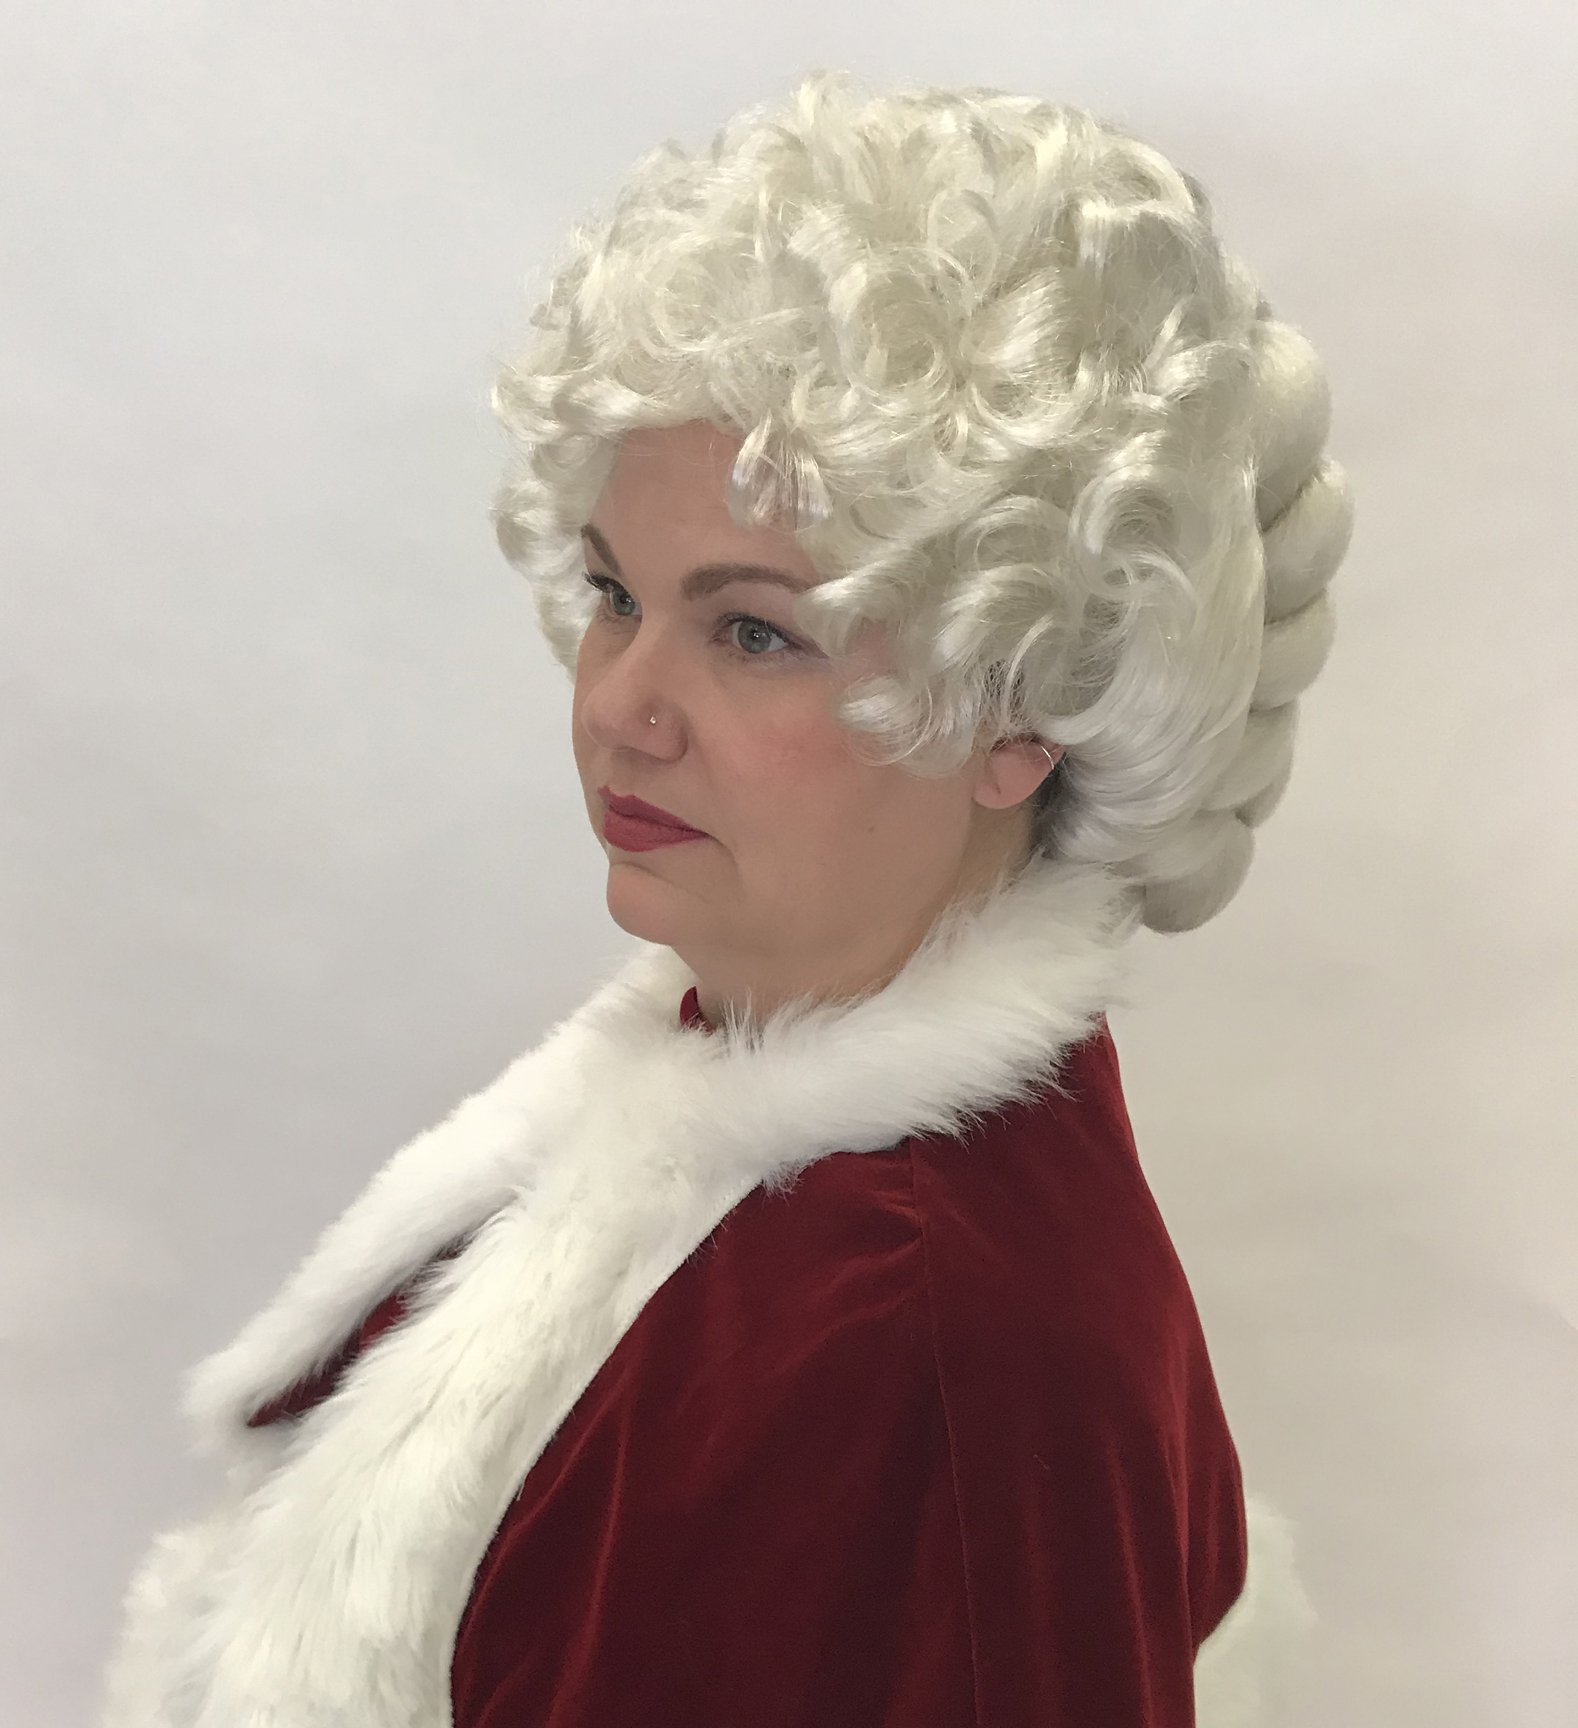 Full Braided Mrs. Claus Wig